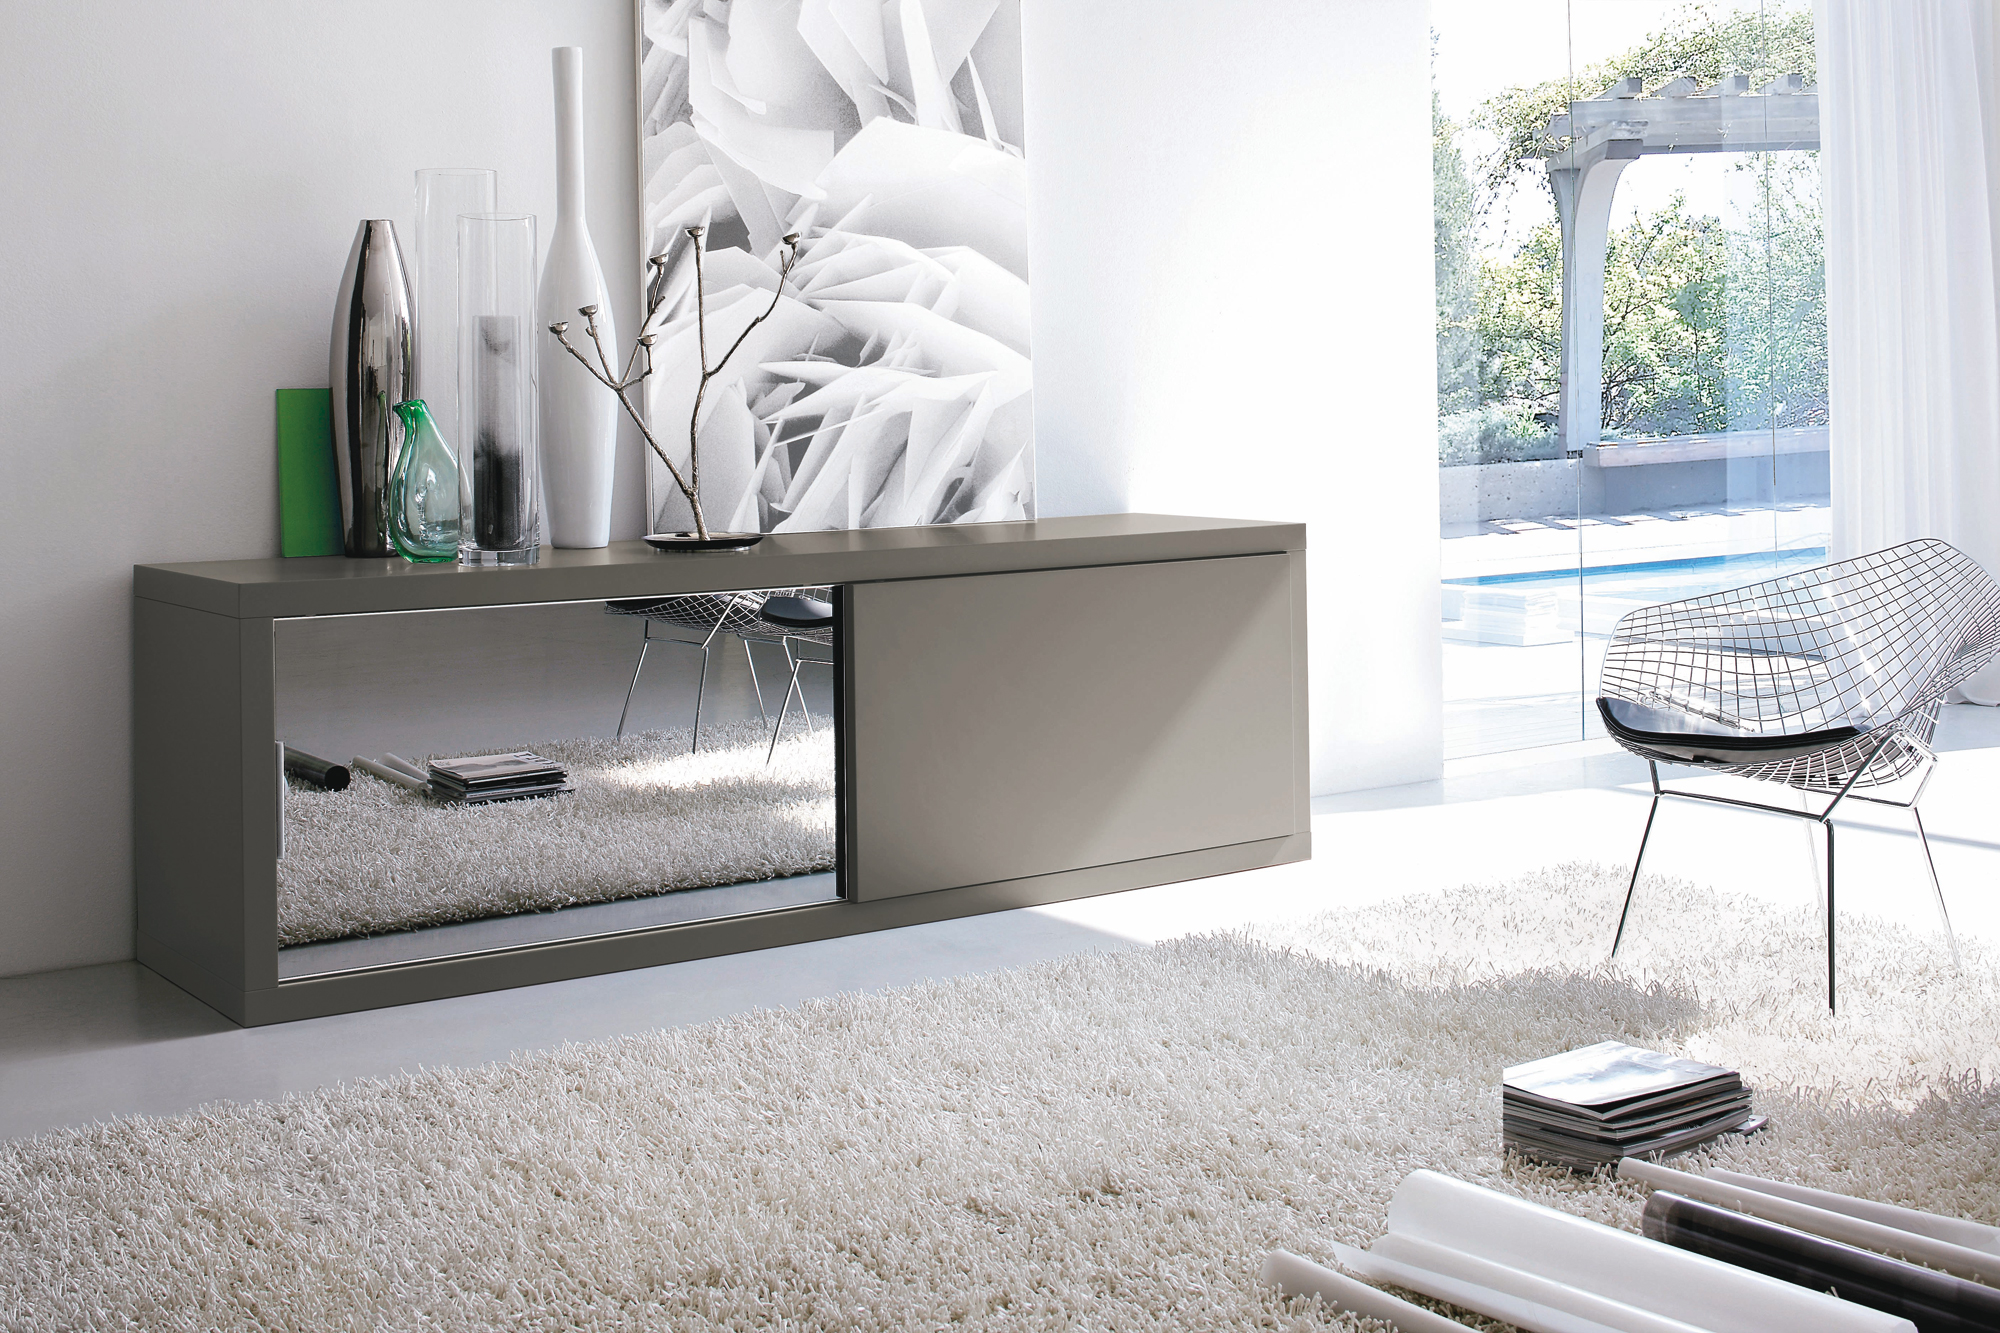 Credenza ante scorrevoli for Atlante compass